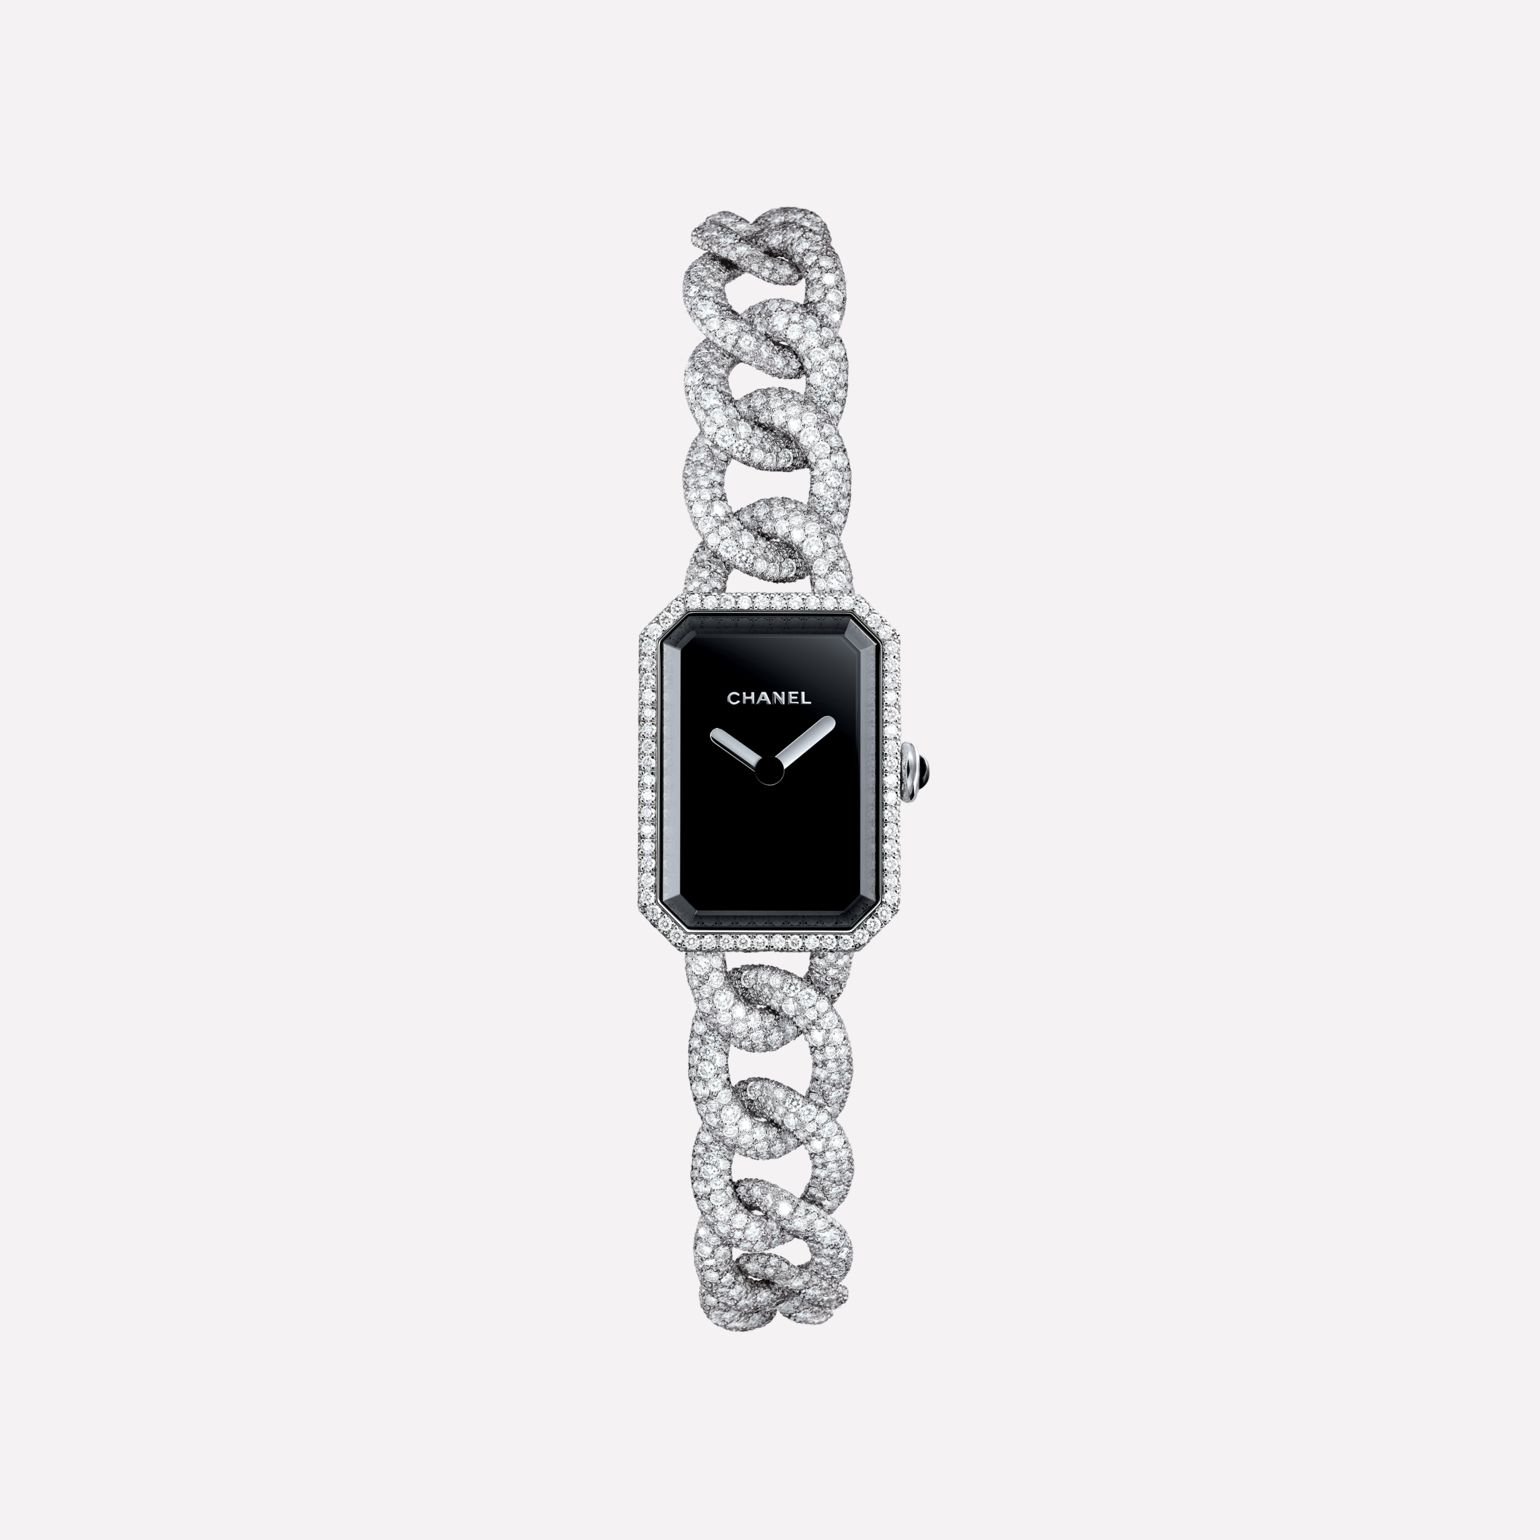 Première Jewelry Watch Small version, white gold and diamonds, black-lacquered dial